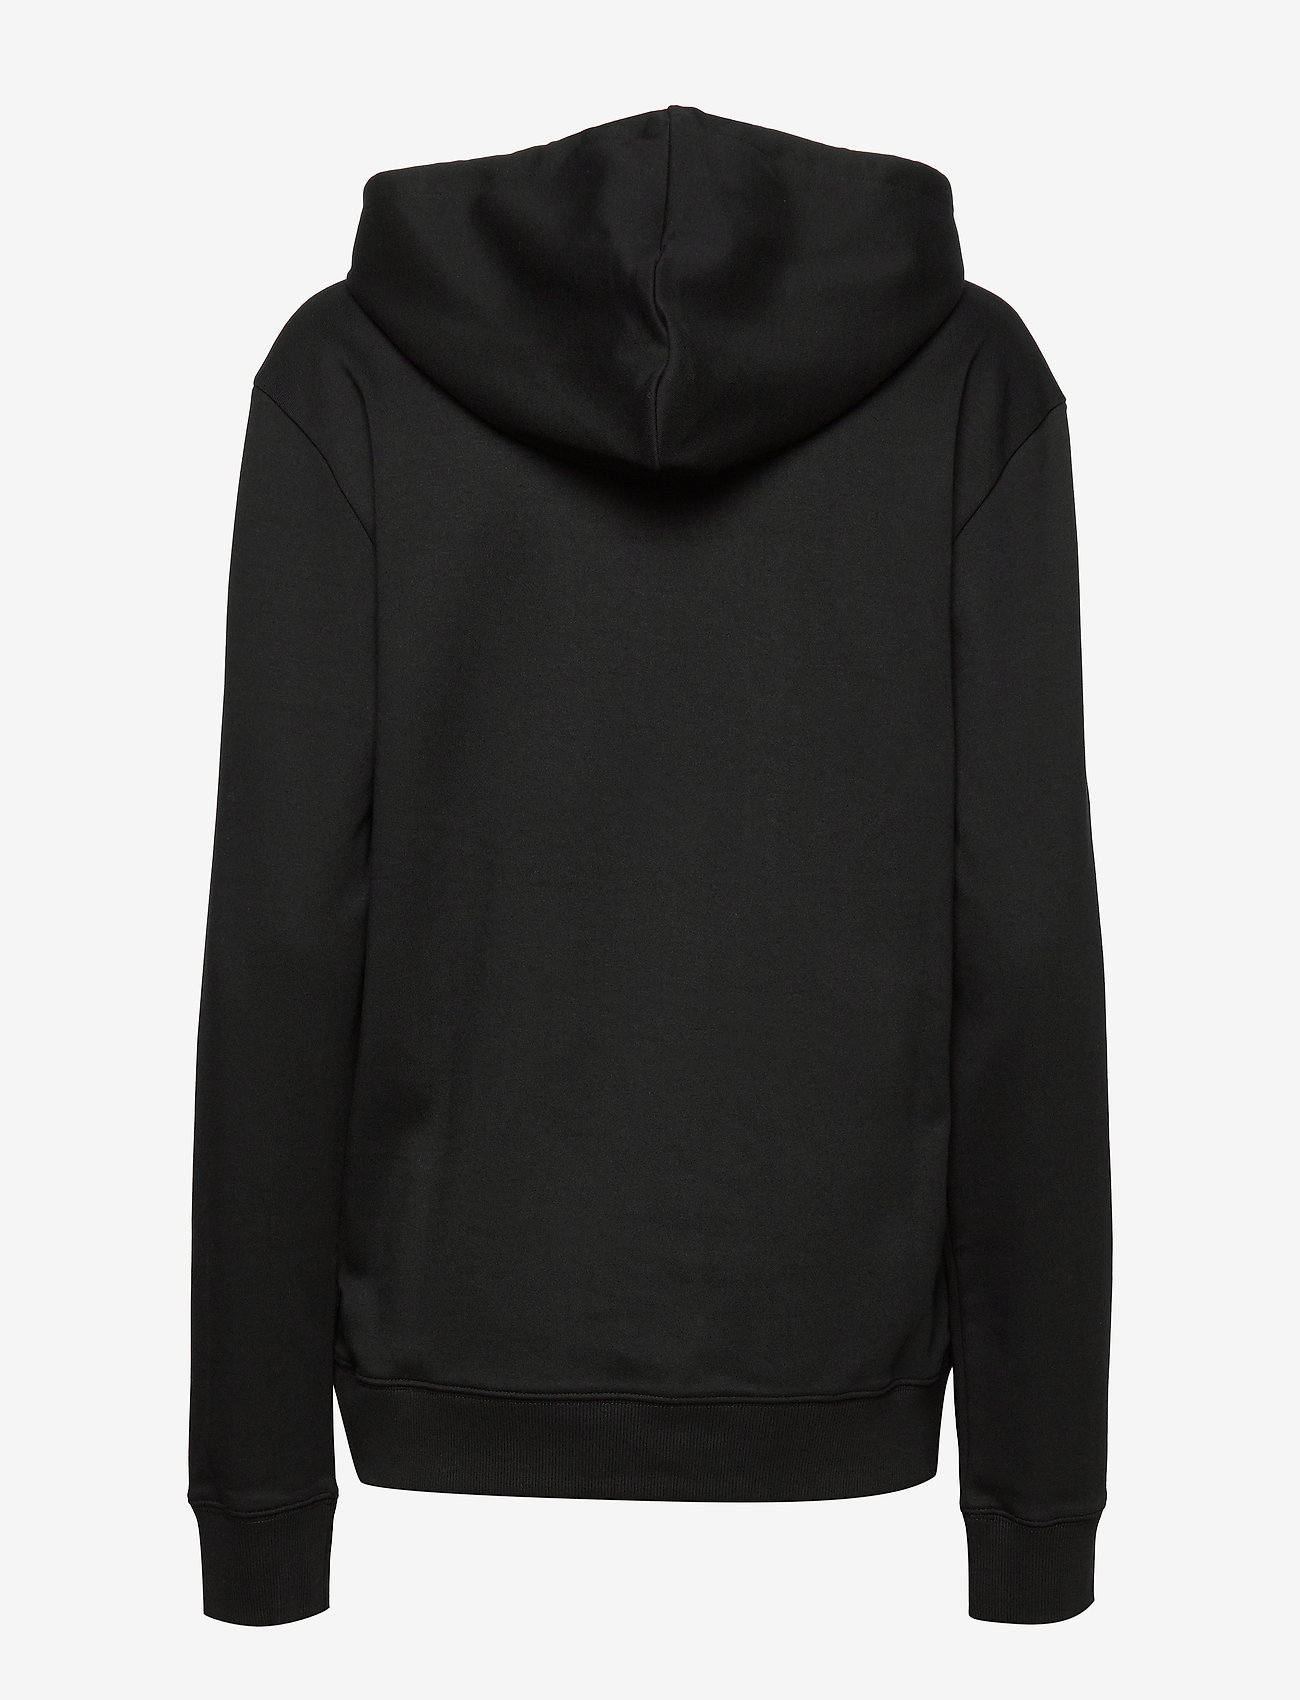 Hugo Dangfall - Ww Sweatshirts Black